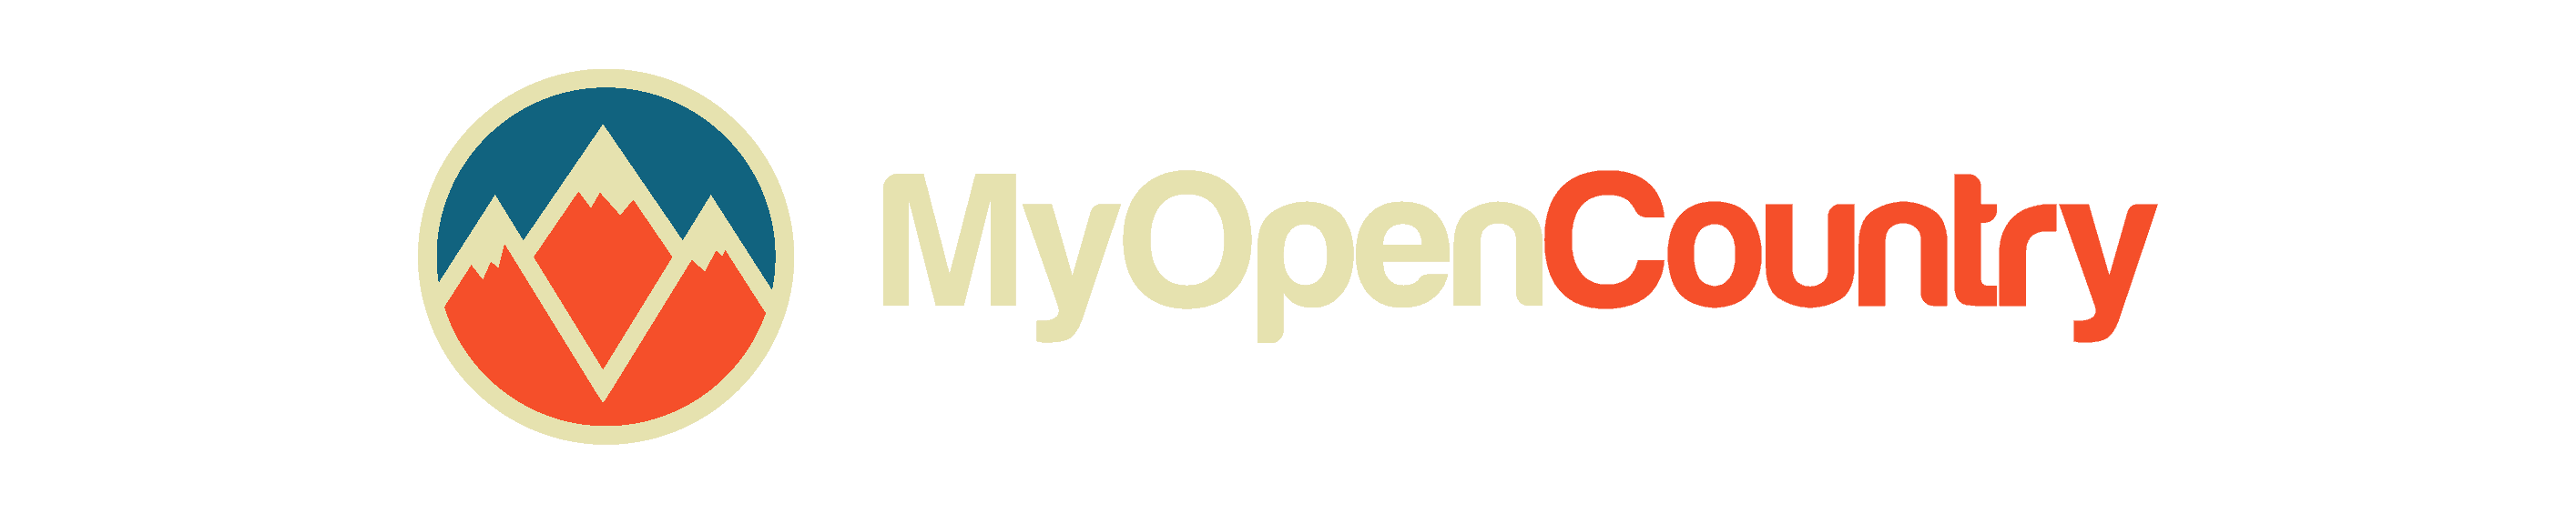 My Open Country Light Logo